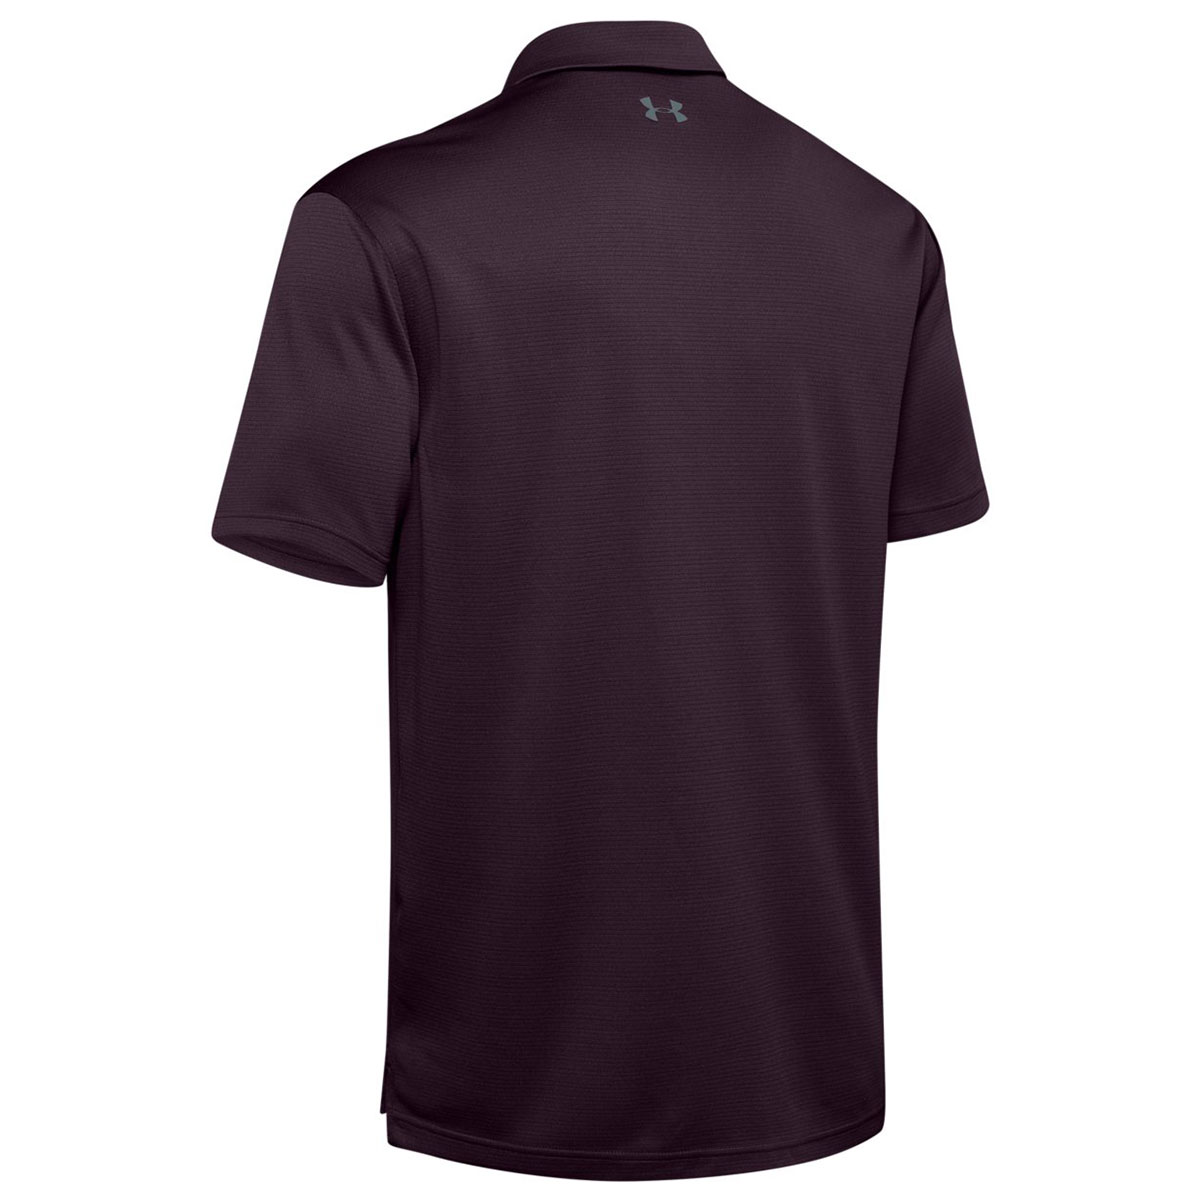 Under-Armour-Mens-Golf-Tech-Wicking-Textured-Soft-Light-Polo-Shirt thumbnail 43